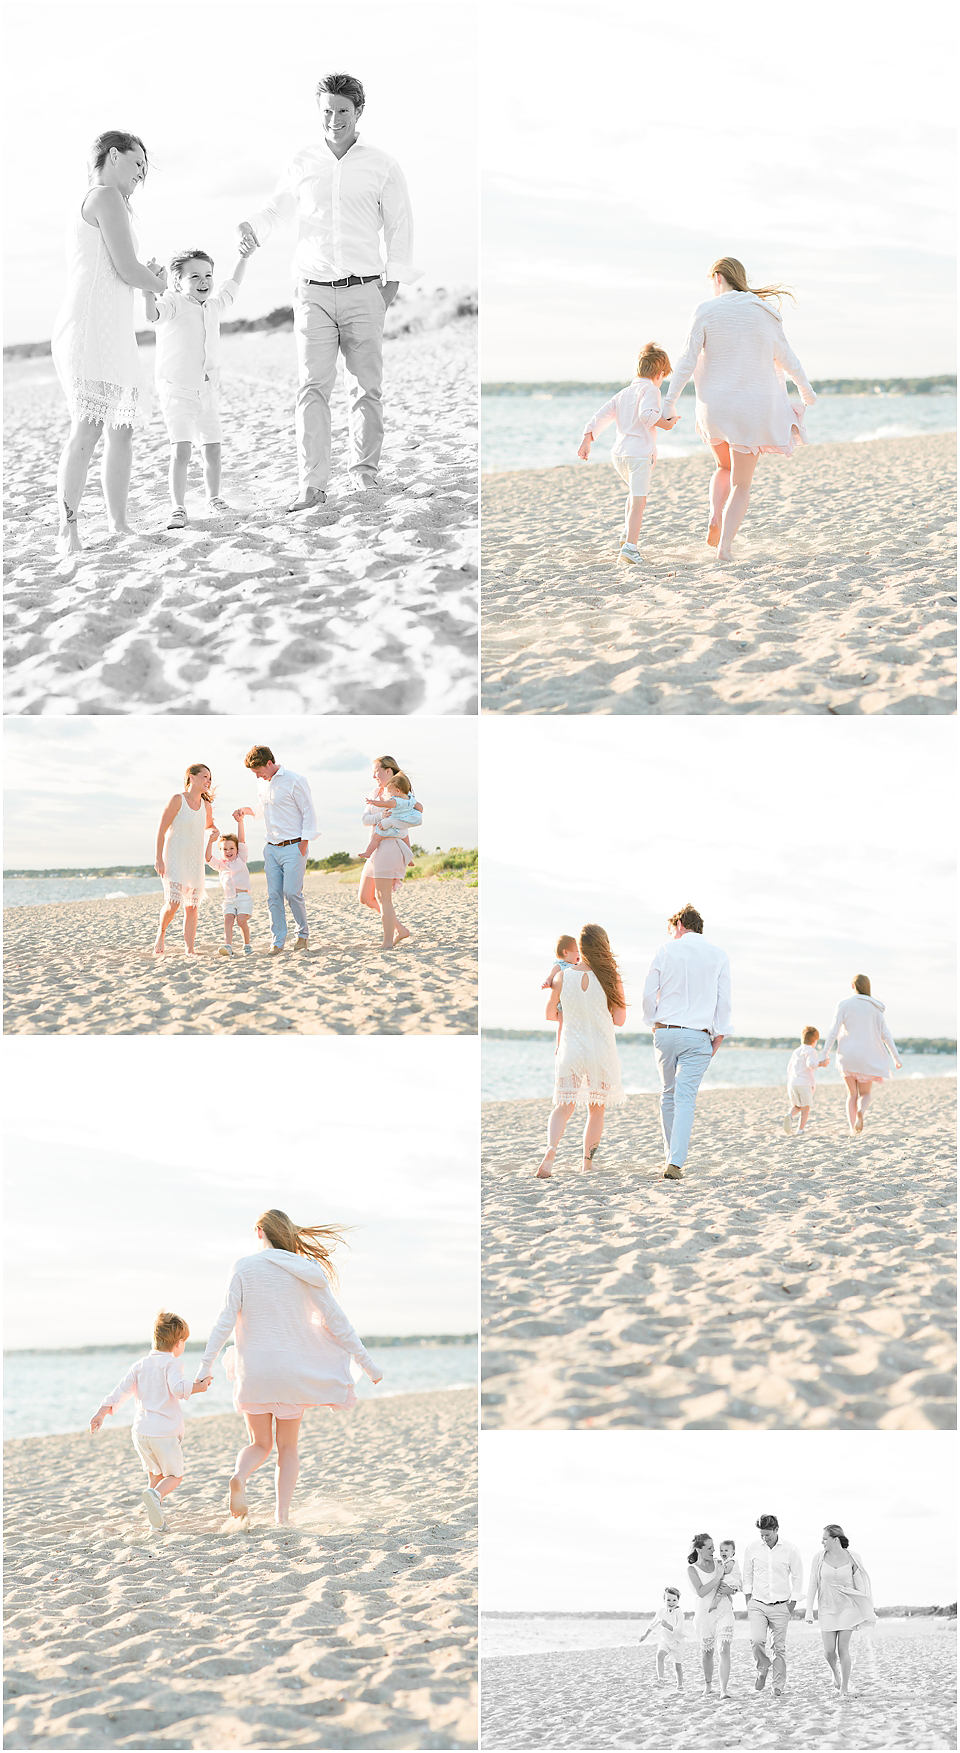 Best Family Photographers in CT | Family Beach Portraits | CT Family Photographers | Family Beach Session | Connecticut Photographers | www.kellidease.com